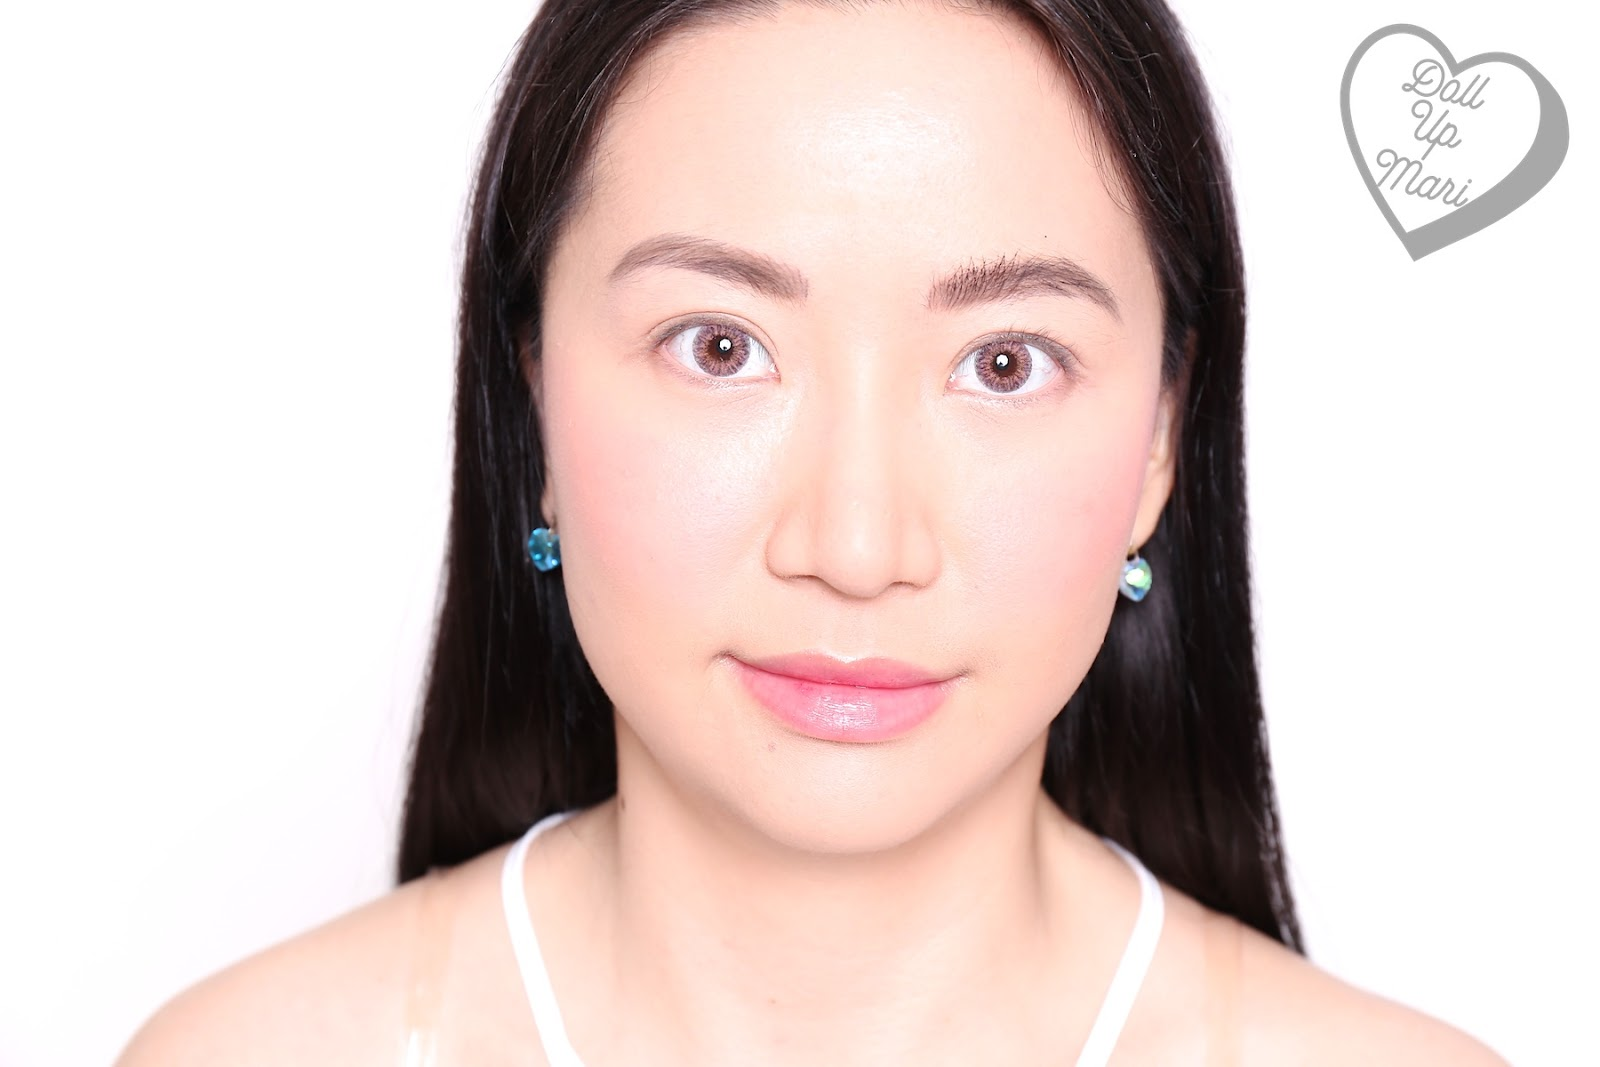 Using Maybelline HyperCurl on the brows